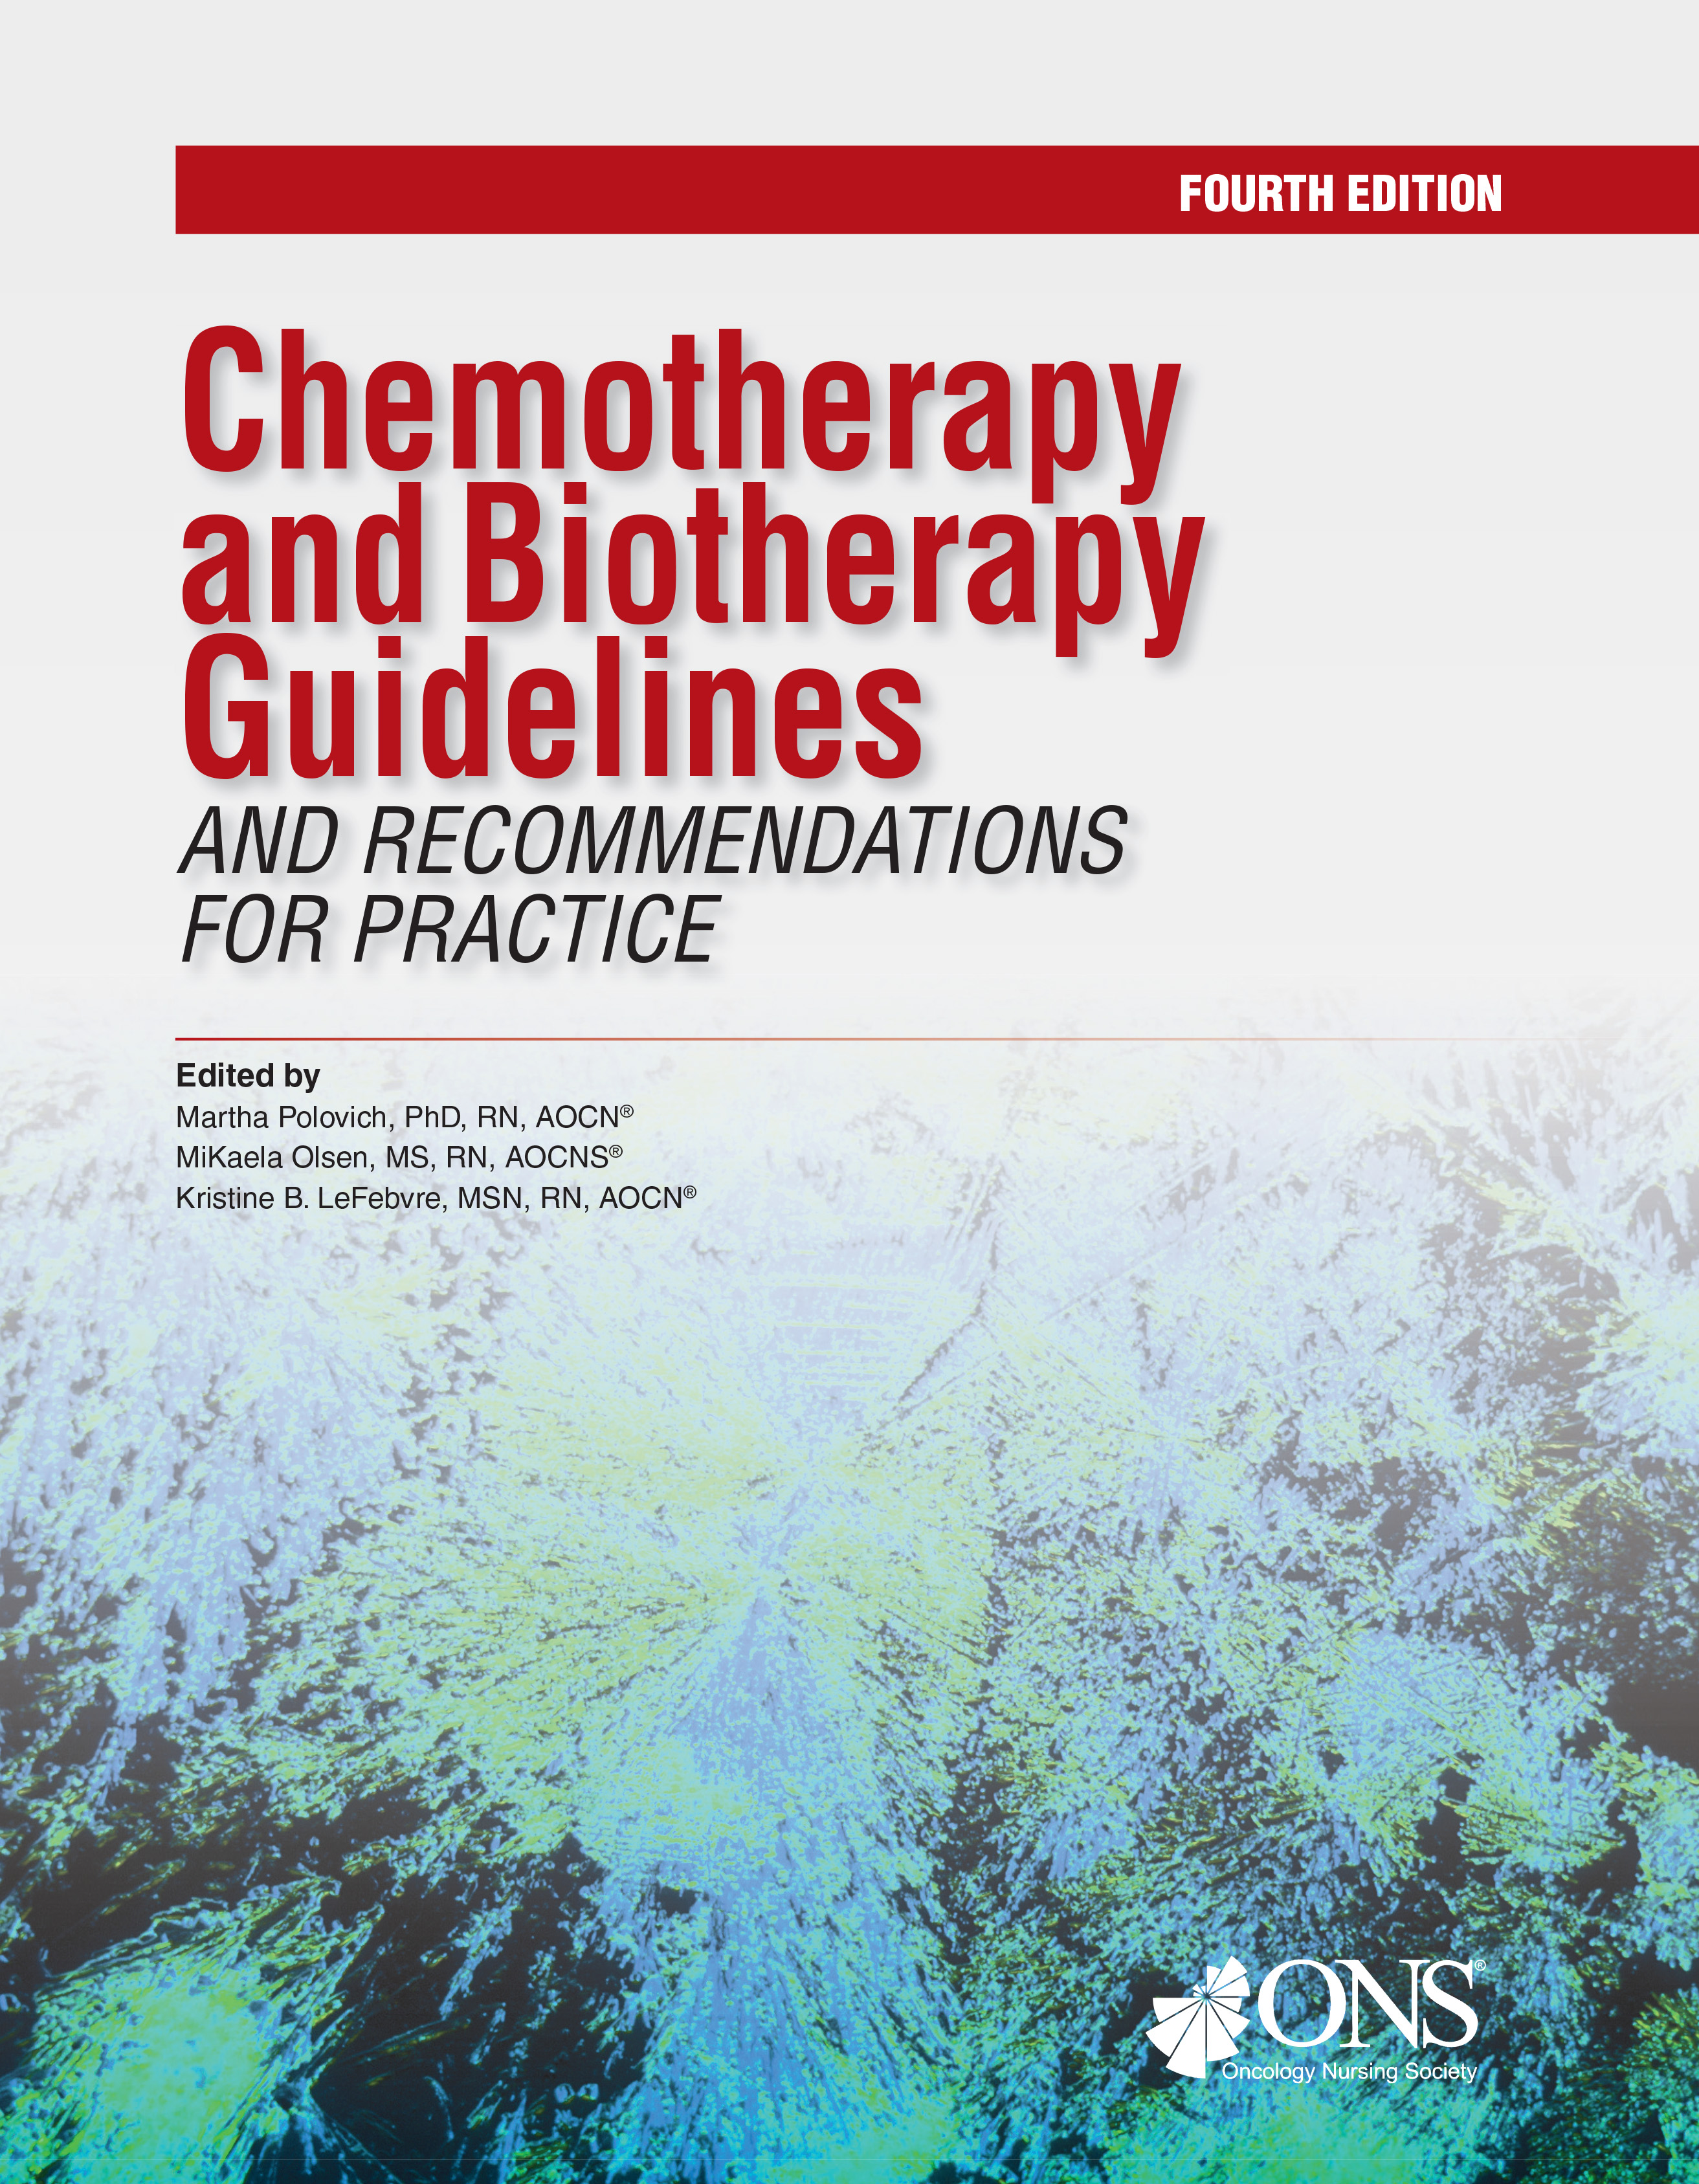 Chemotherapy and biotherapy guidelines and recommendations for chemotherapy and biotherapy guidelines and recommendations for practice fourth edition fandeluxe Gallery